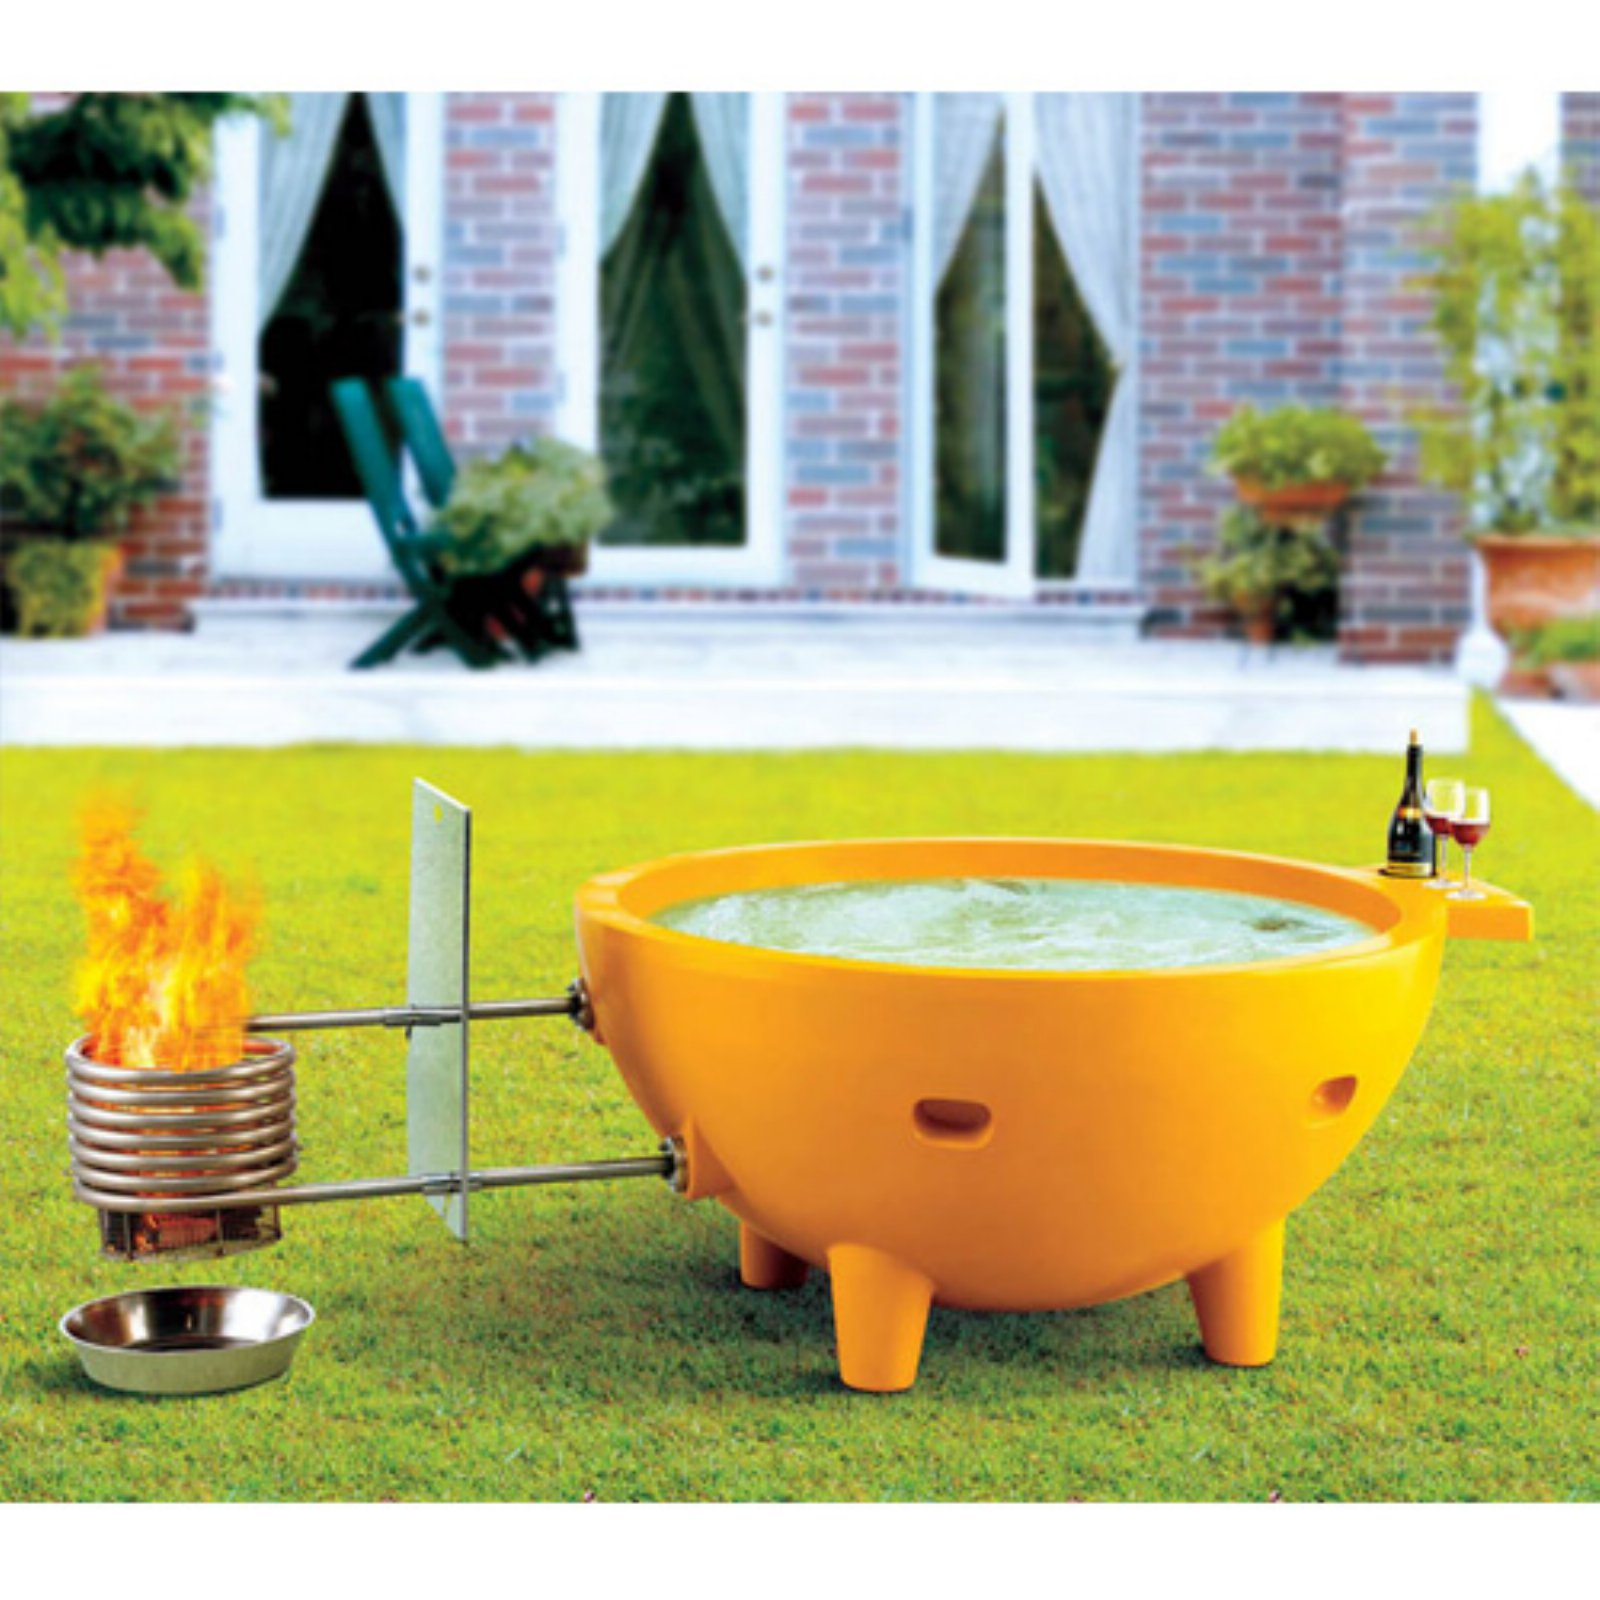 ALFI brand Green FireHotTub The Round Fire Burning Portable Outdoor Hot Bath Tub